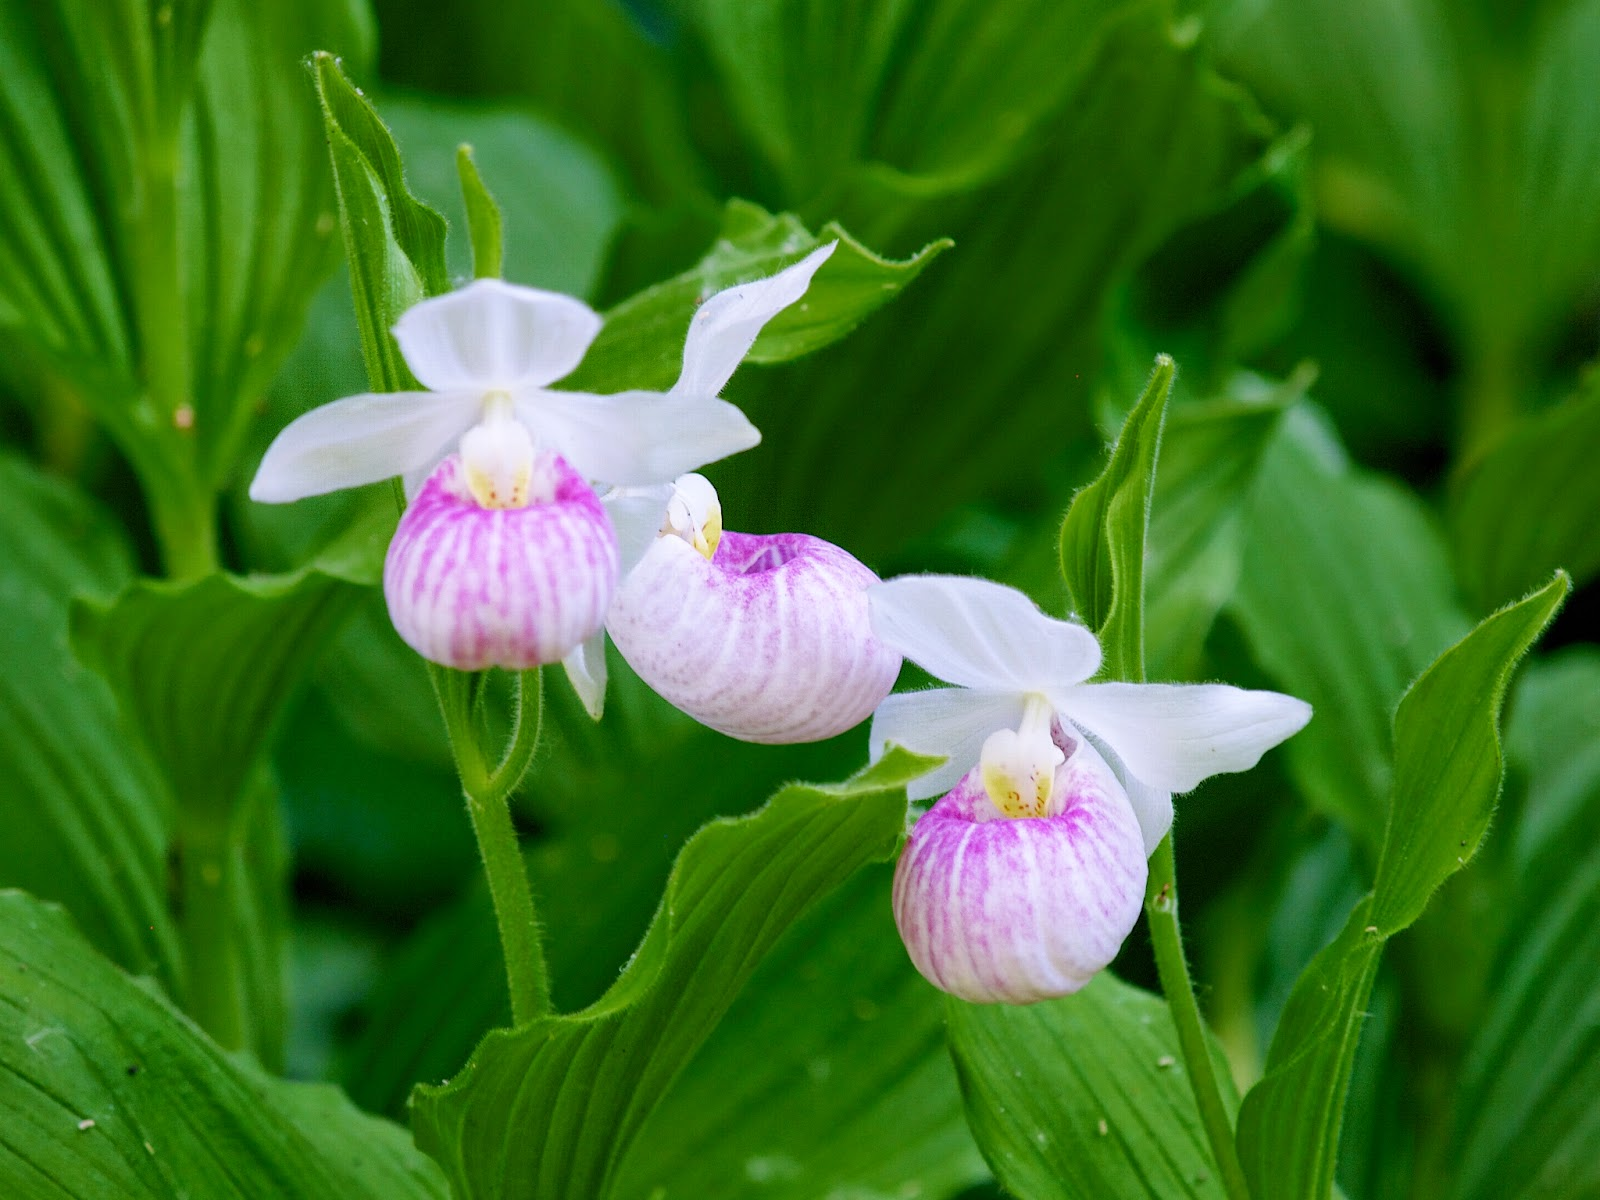 Benefits Of Lady's Slipper (Cypripedium Pubescens) For Health